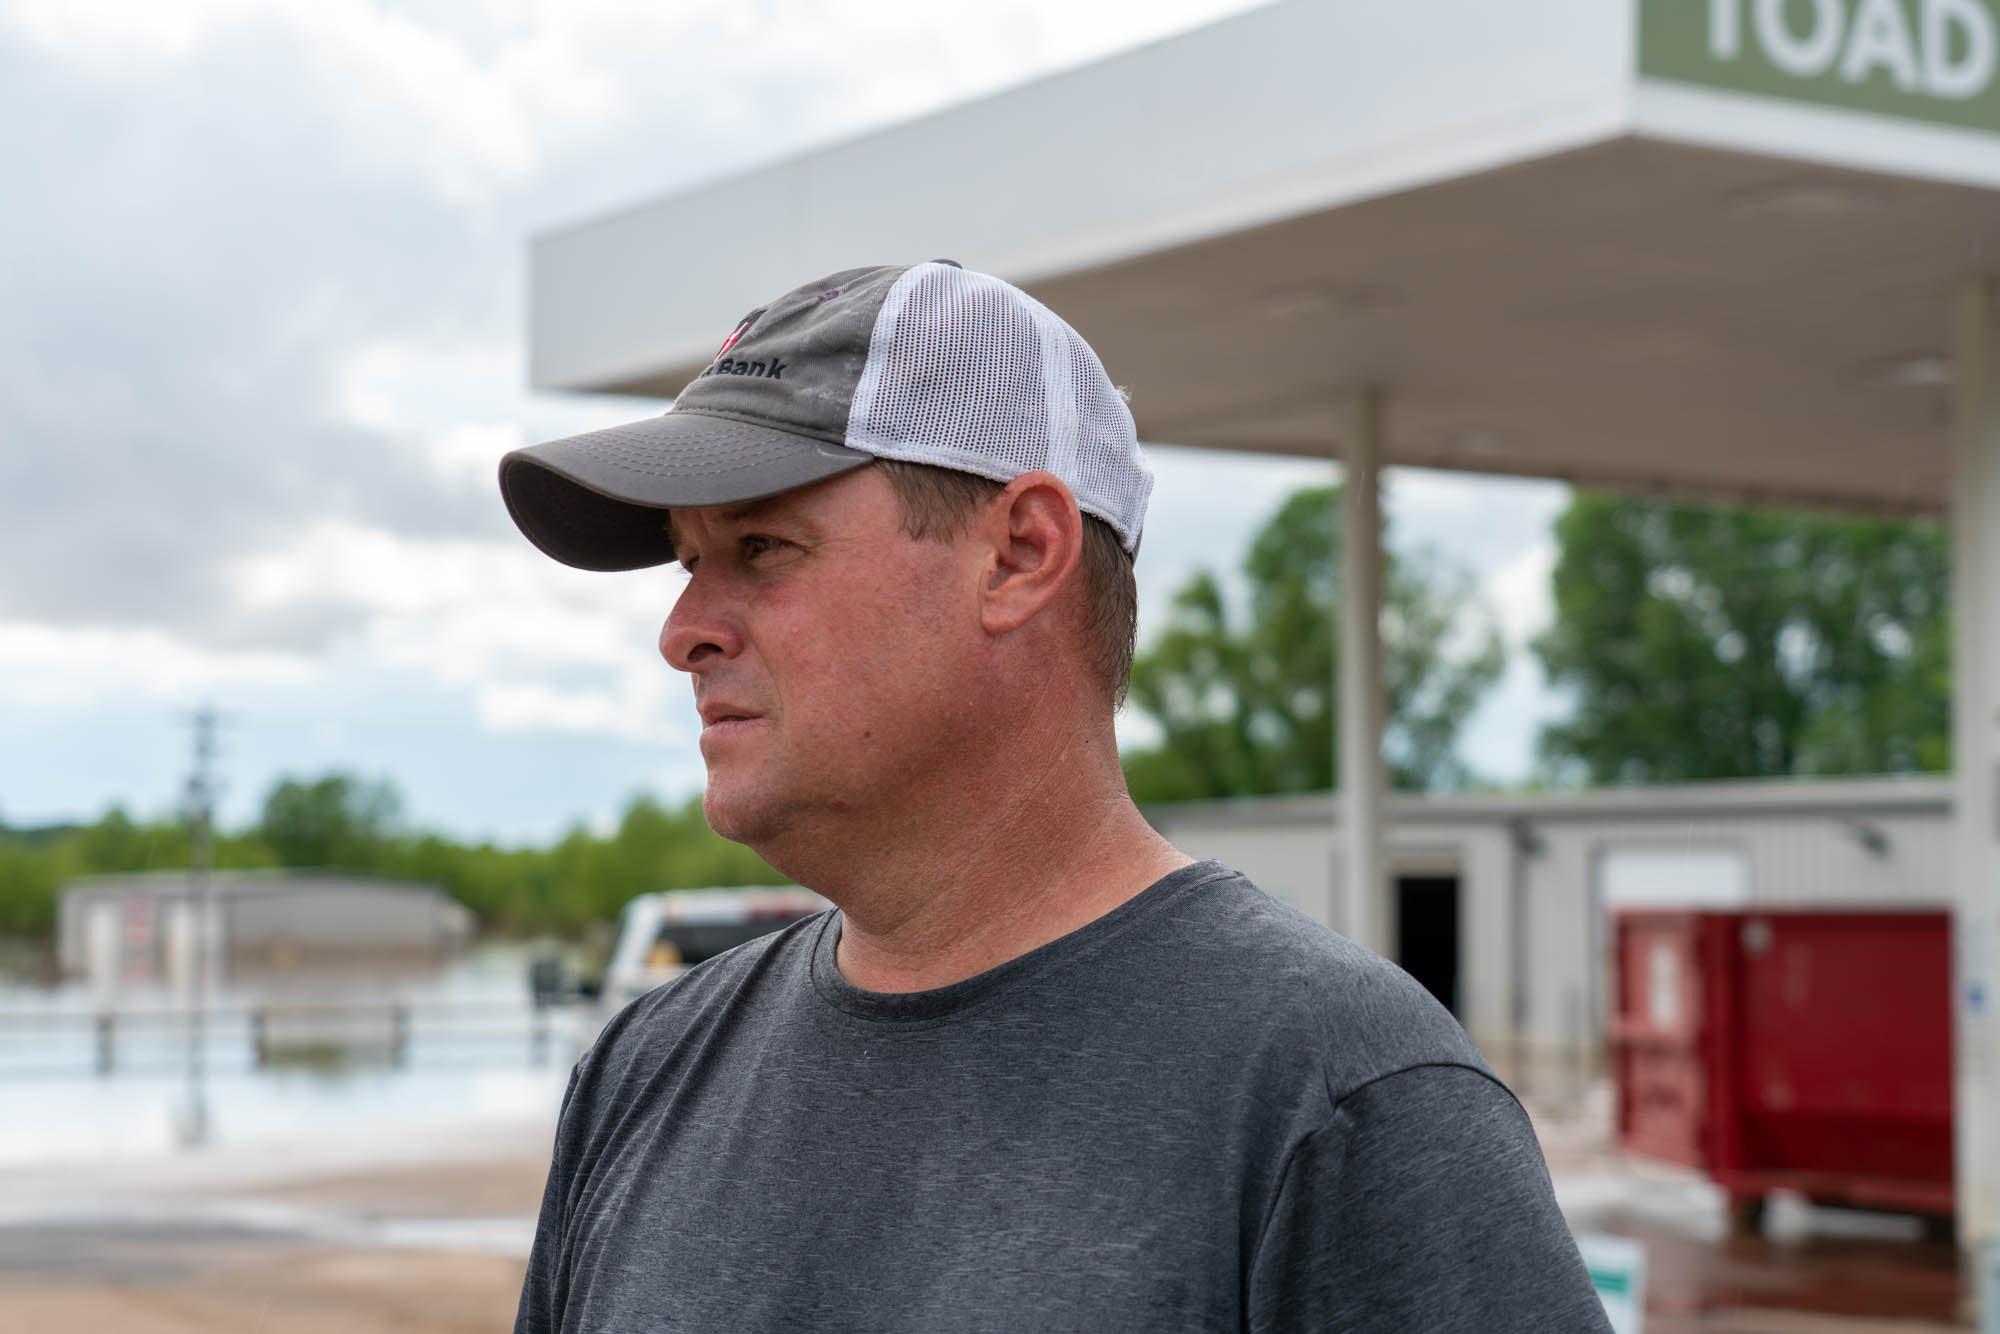 Jason Trantina has operated the Toad Suck One-Stop since 1997. The parking lot had taken on water before, but this was the first time the store itself flooded. (Jordan Laird/News21)